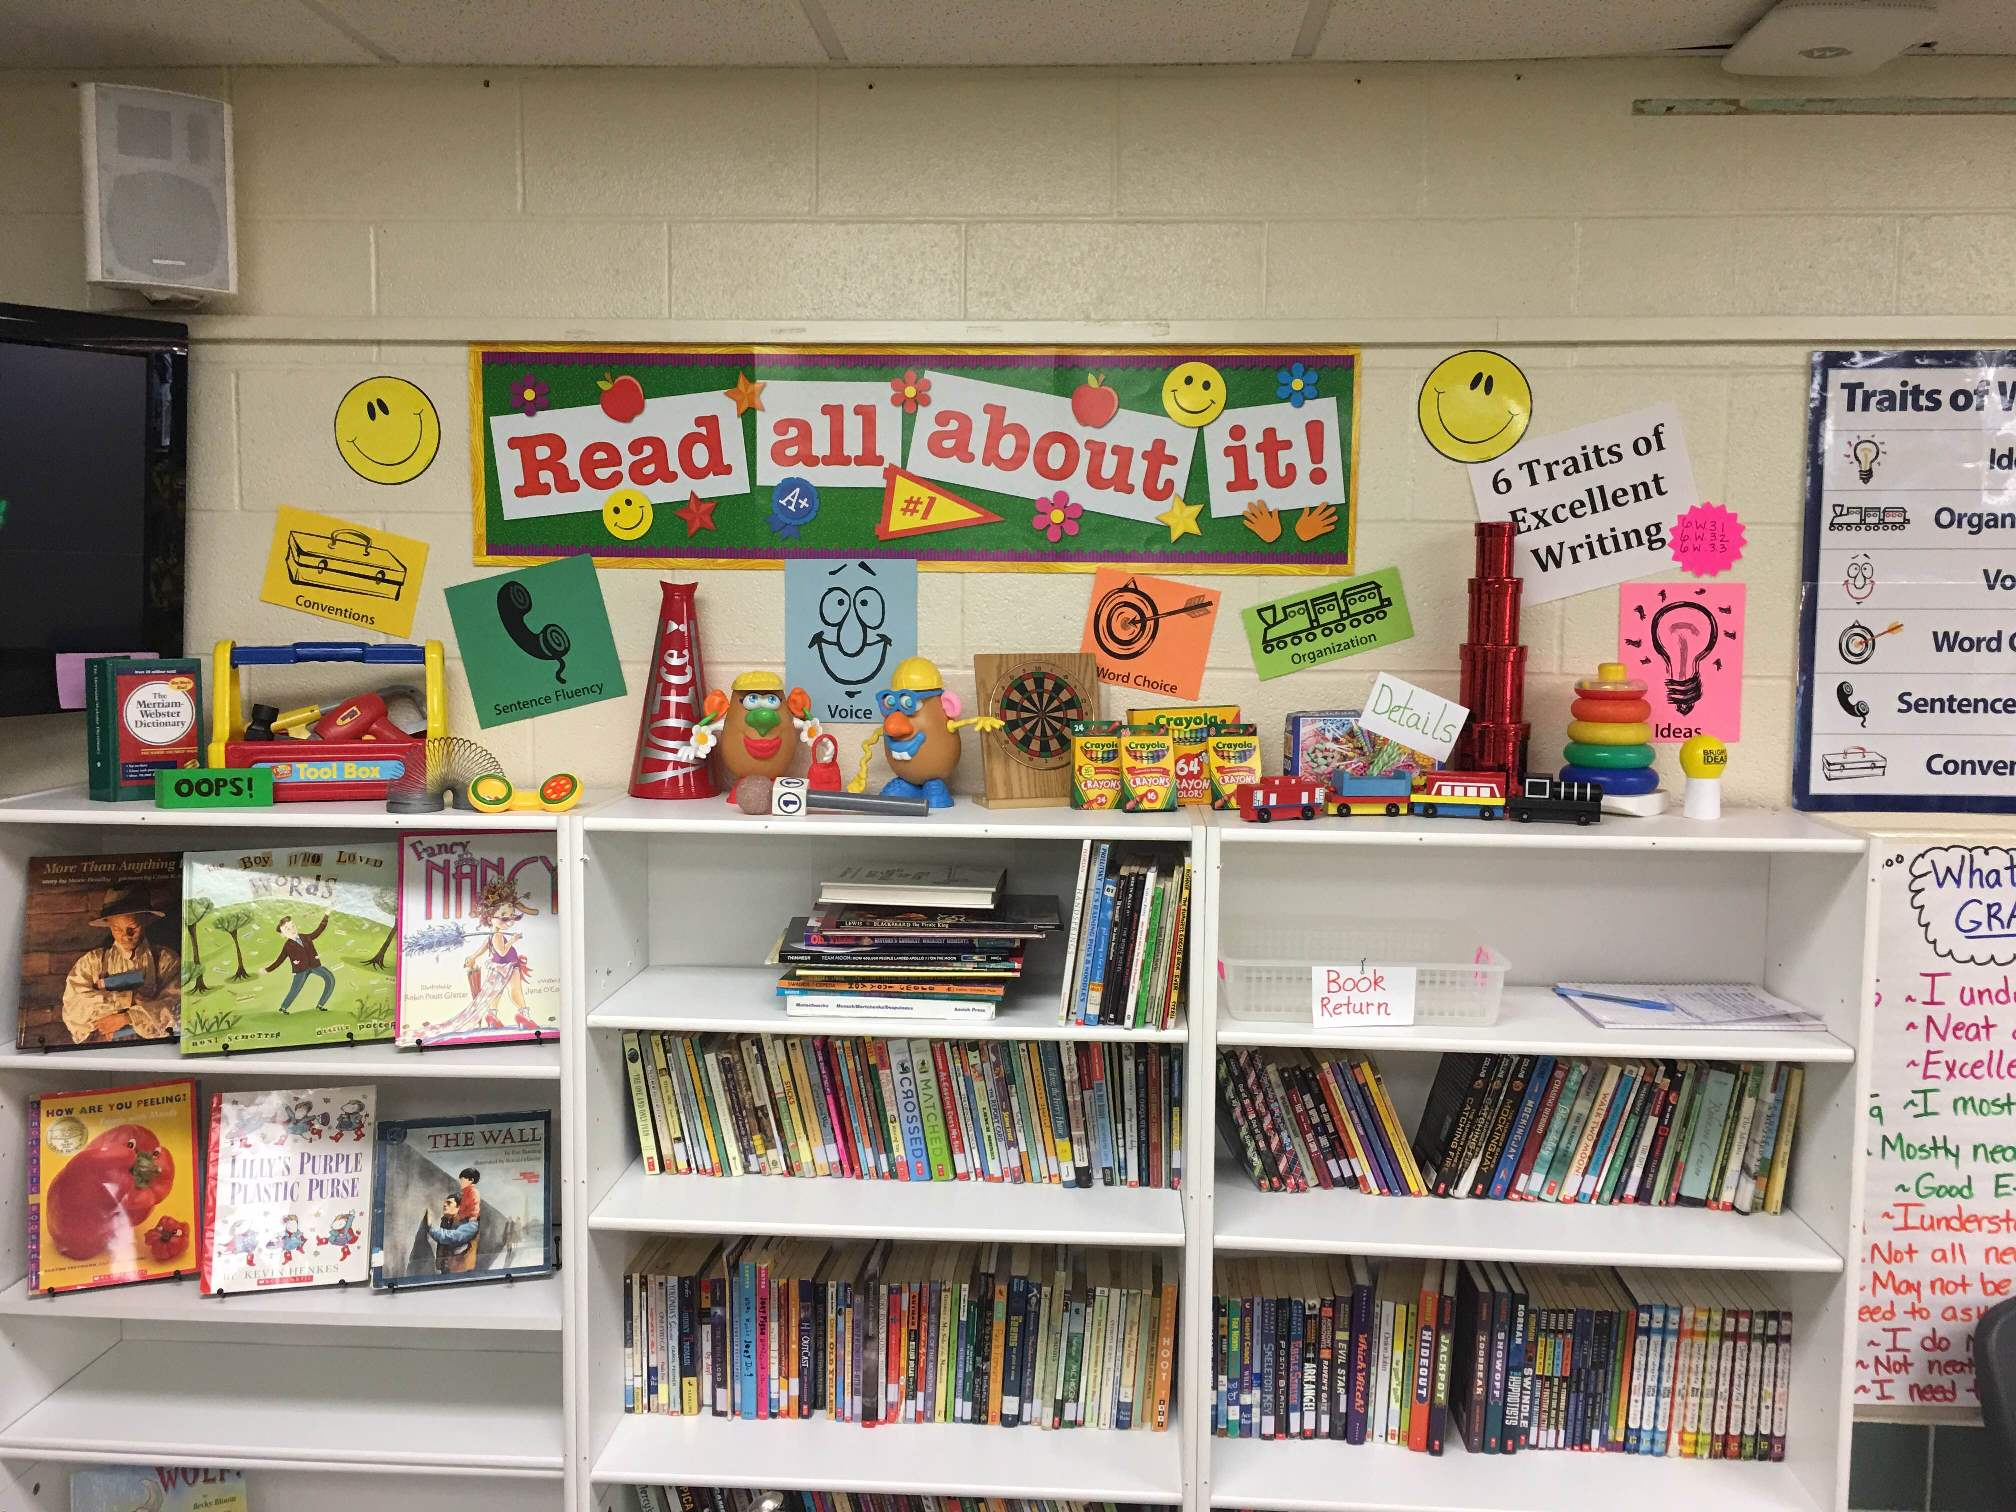 Toys & Triggers for Literacy Instruction  Display